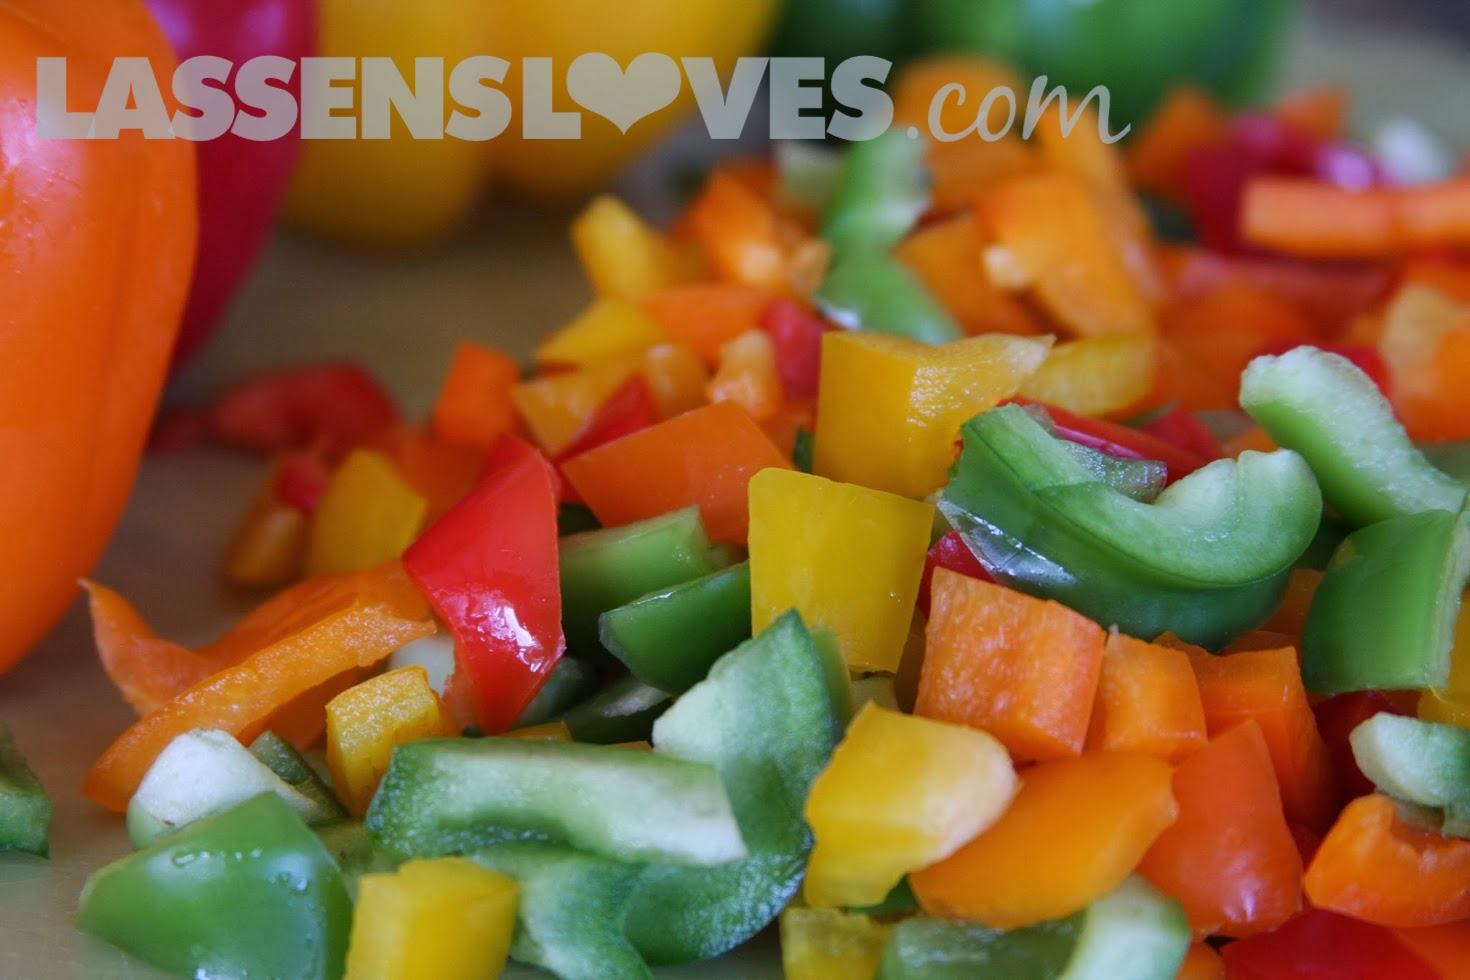 lassensloves.com, Lassen's, Lassens, Salmon+Recipe, Salmon+Peppers+Recipe